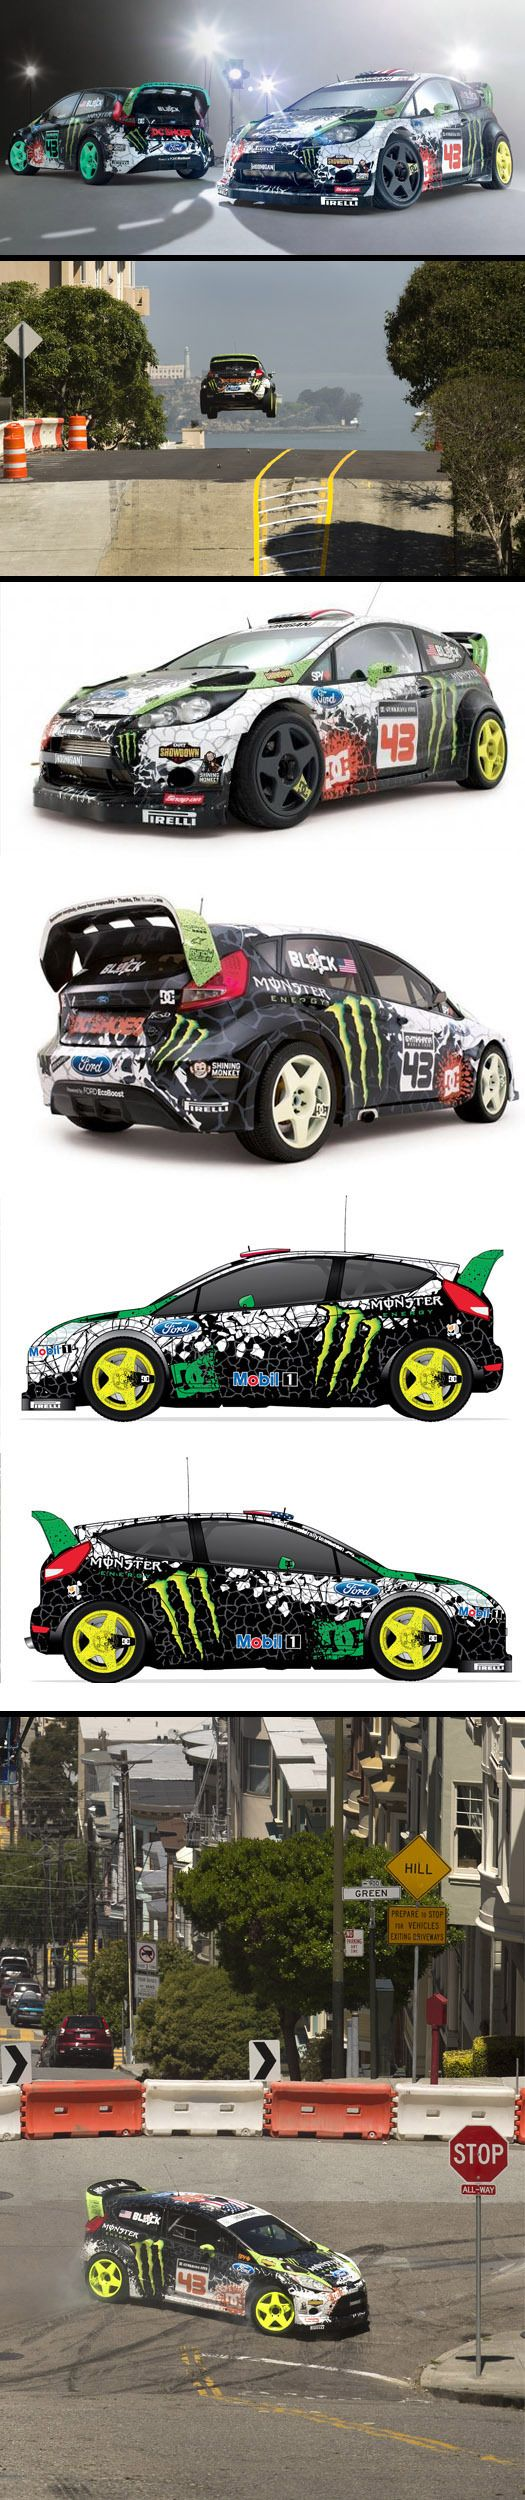 DC Shoes / Ken Block Branding & Vehicle Graphics by SoupGraphix Inc. , via Behance